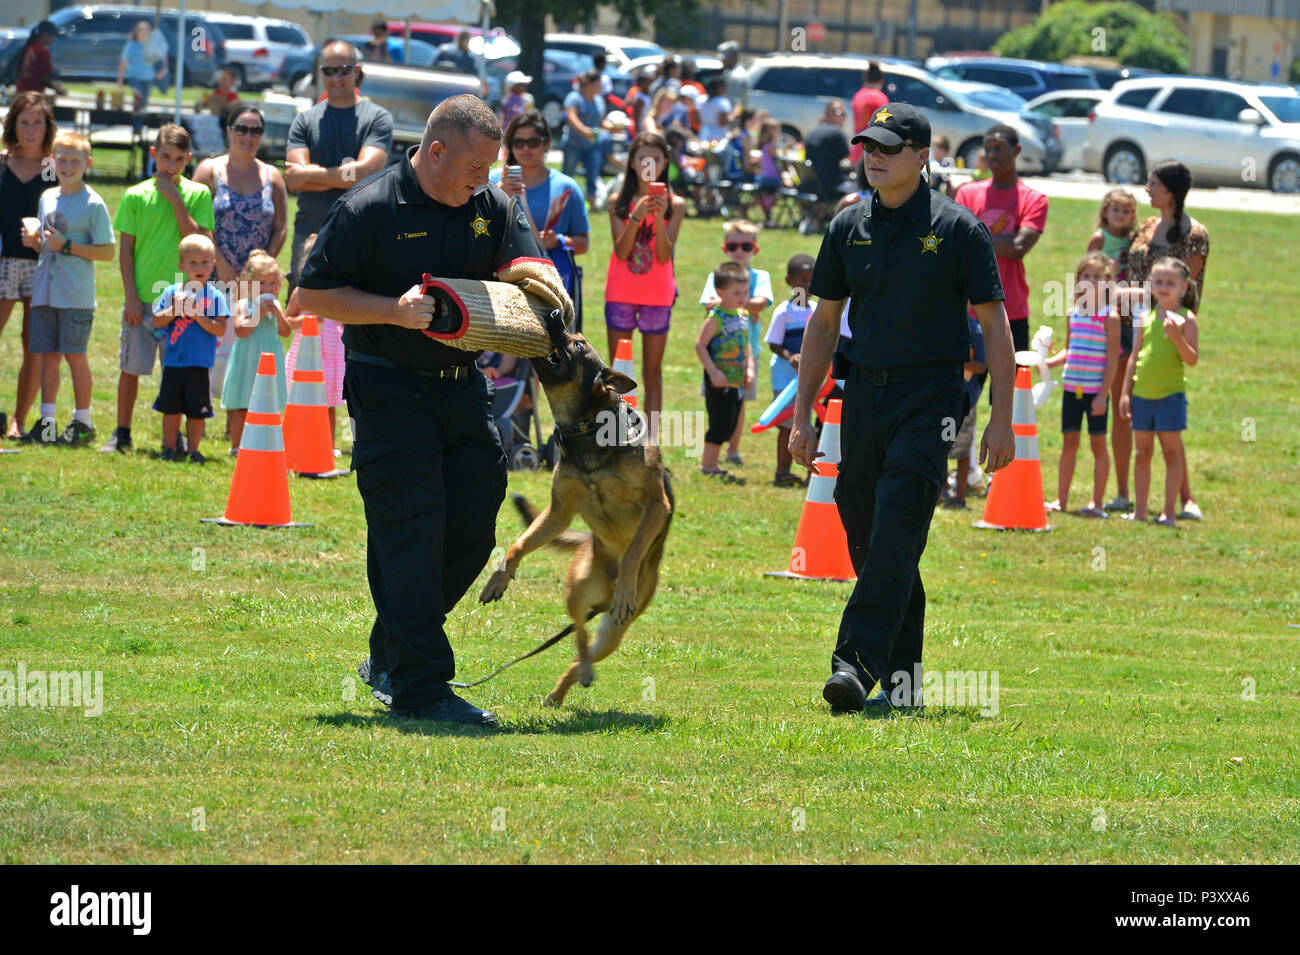 Sumter City Police Department officers performs a K-9 demonstration during the Exceptional Family Member Program Kid's Jamboree at Shaw Air Force Base, S.C., July 27, 2016. The event provided Team Shaw families the opportunity to receive school supplies, play in bounce houses and receive standard health screenings before the beginning of the school year. (U.S. Air Force photo by Airman 1st Class Christopher Maldonado) - Stock Image